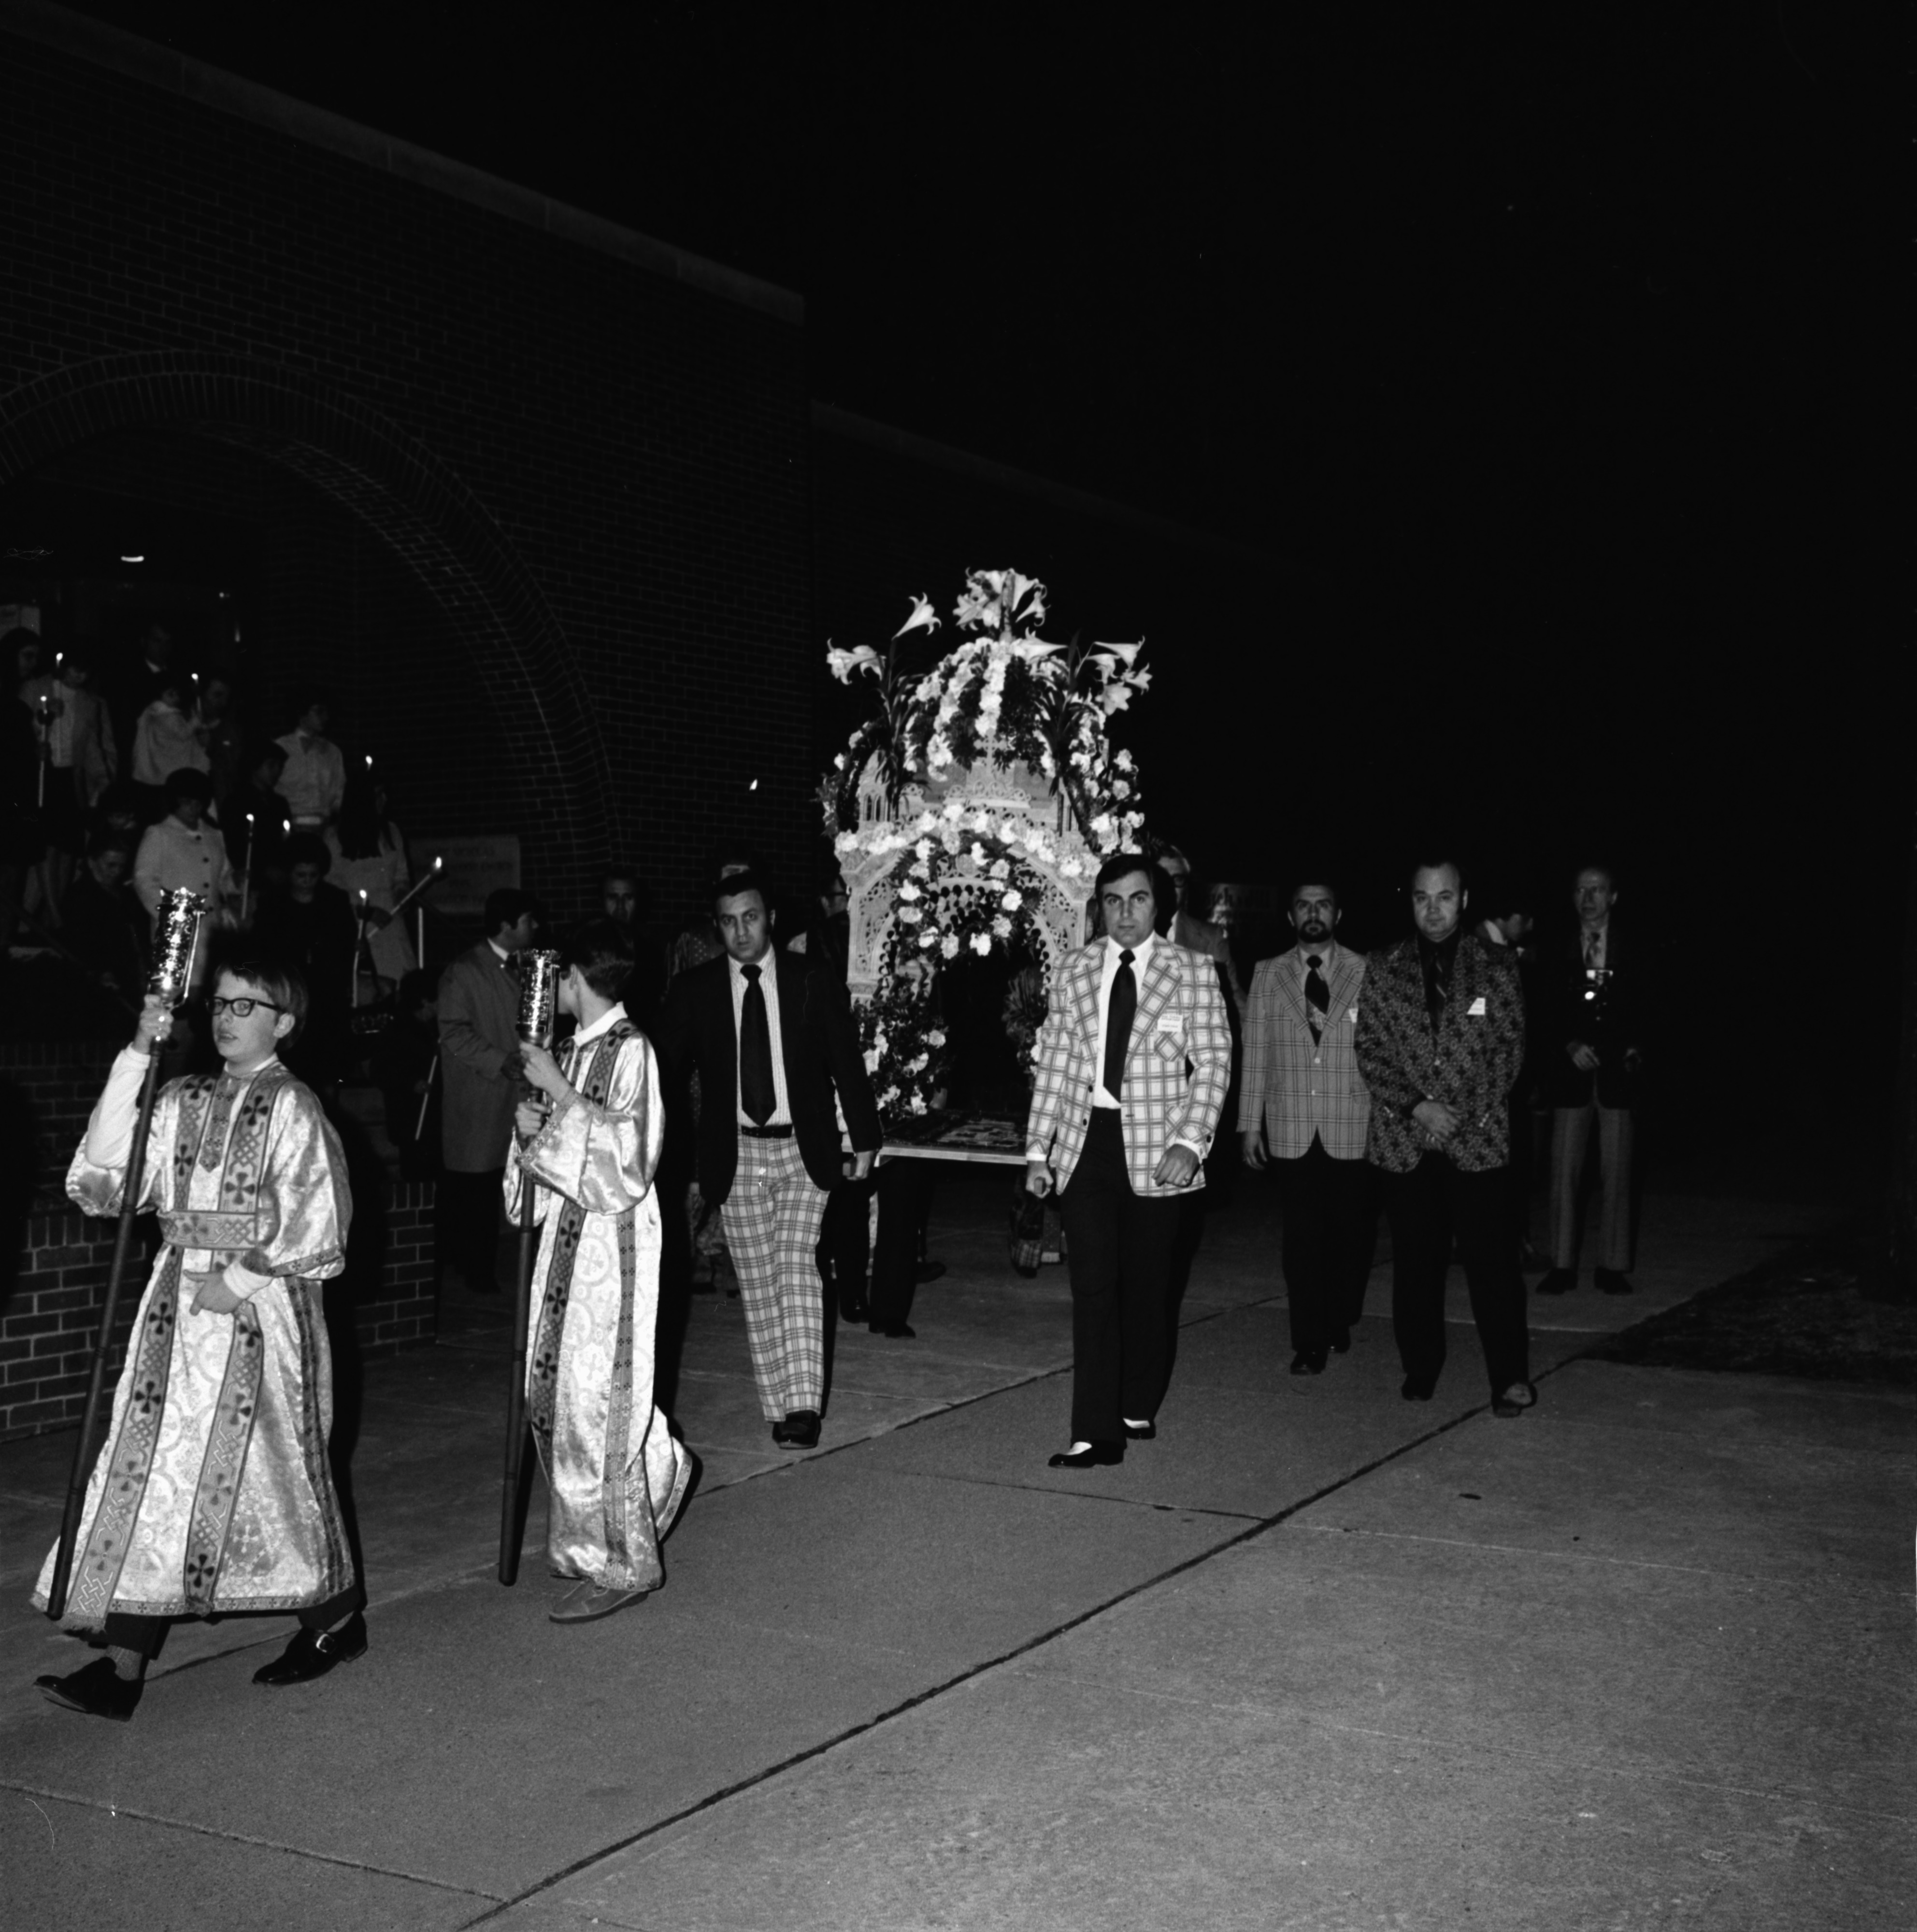 St. Nicholas Greek Orthodox Church Procession Carrying Replica of the Tomb of Christ on Good Friday, April 1974 image